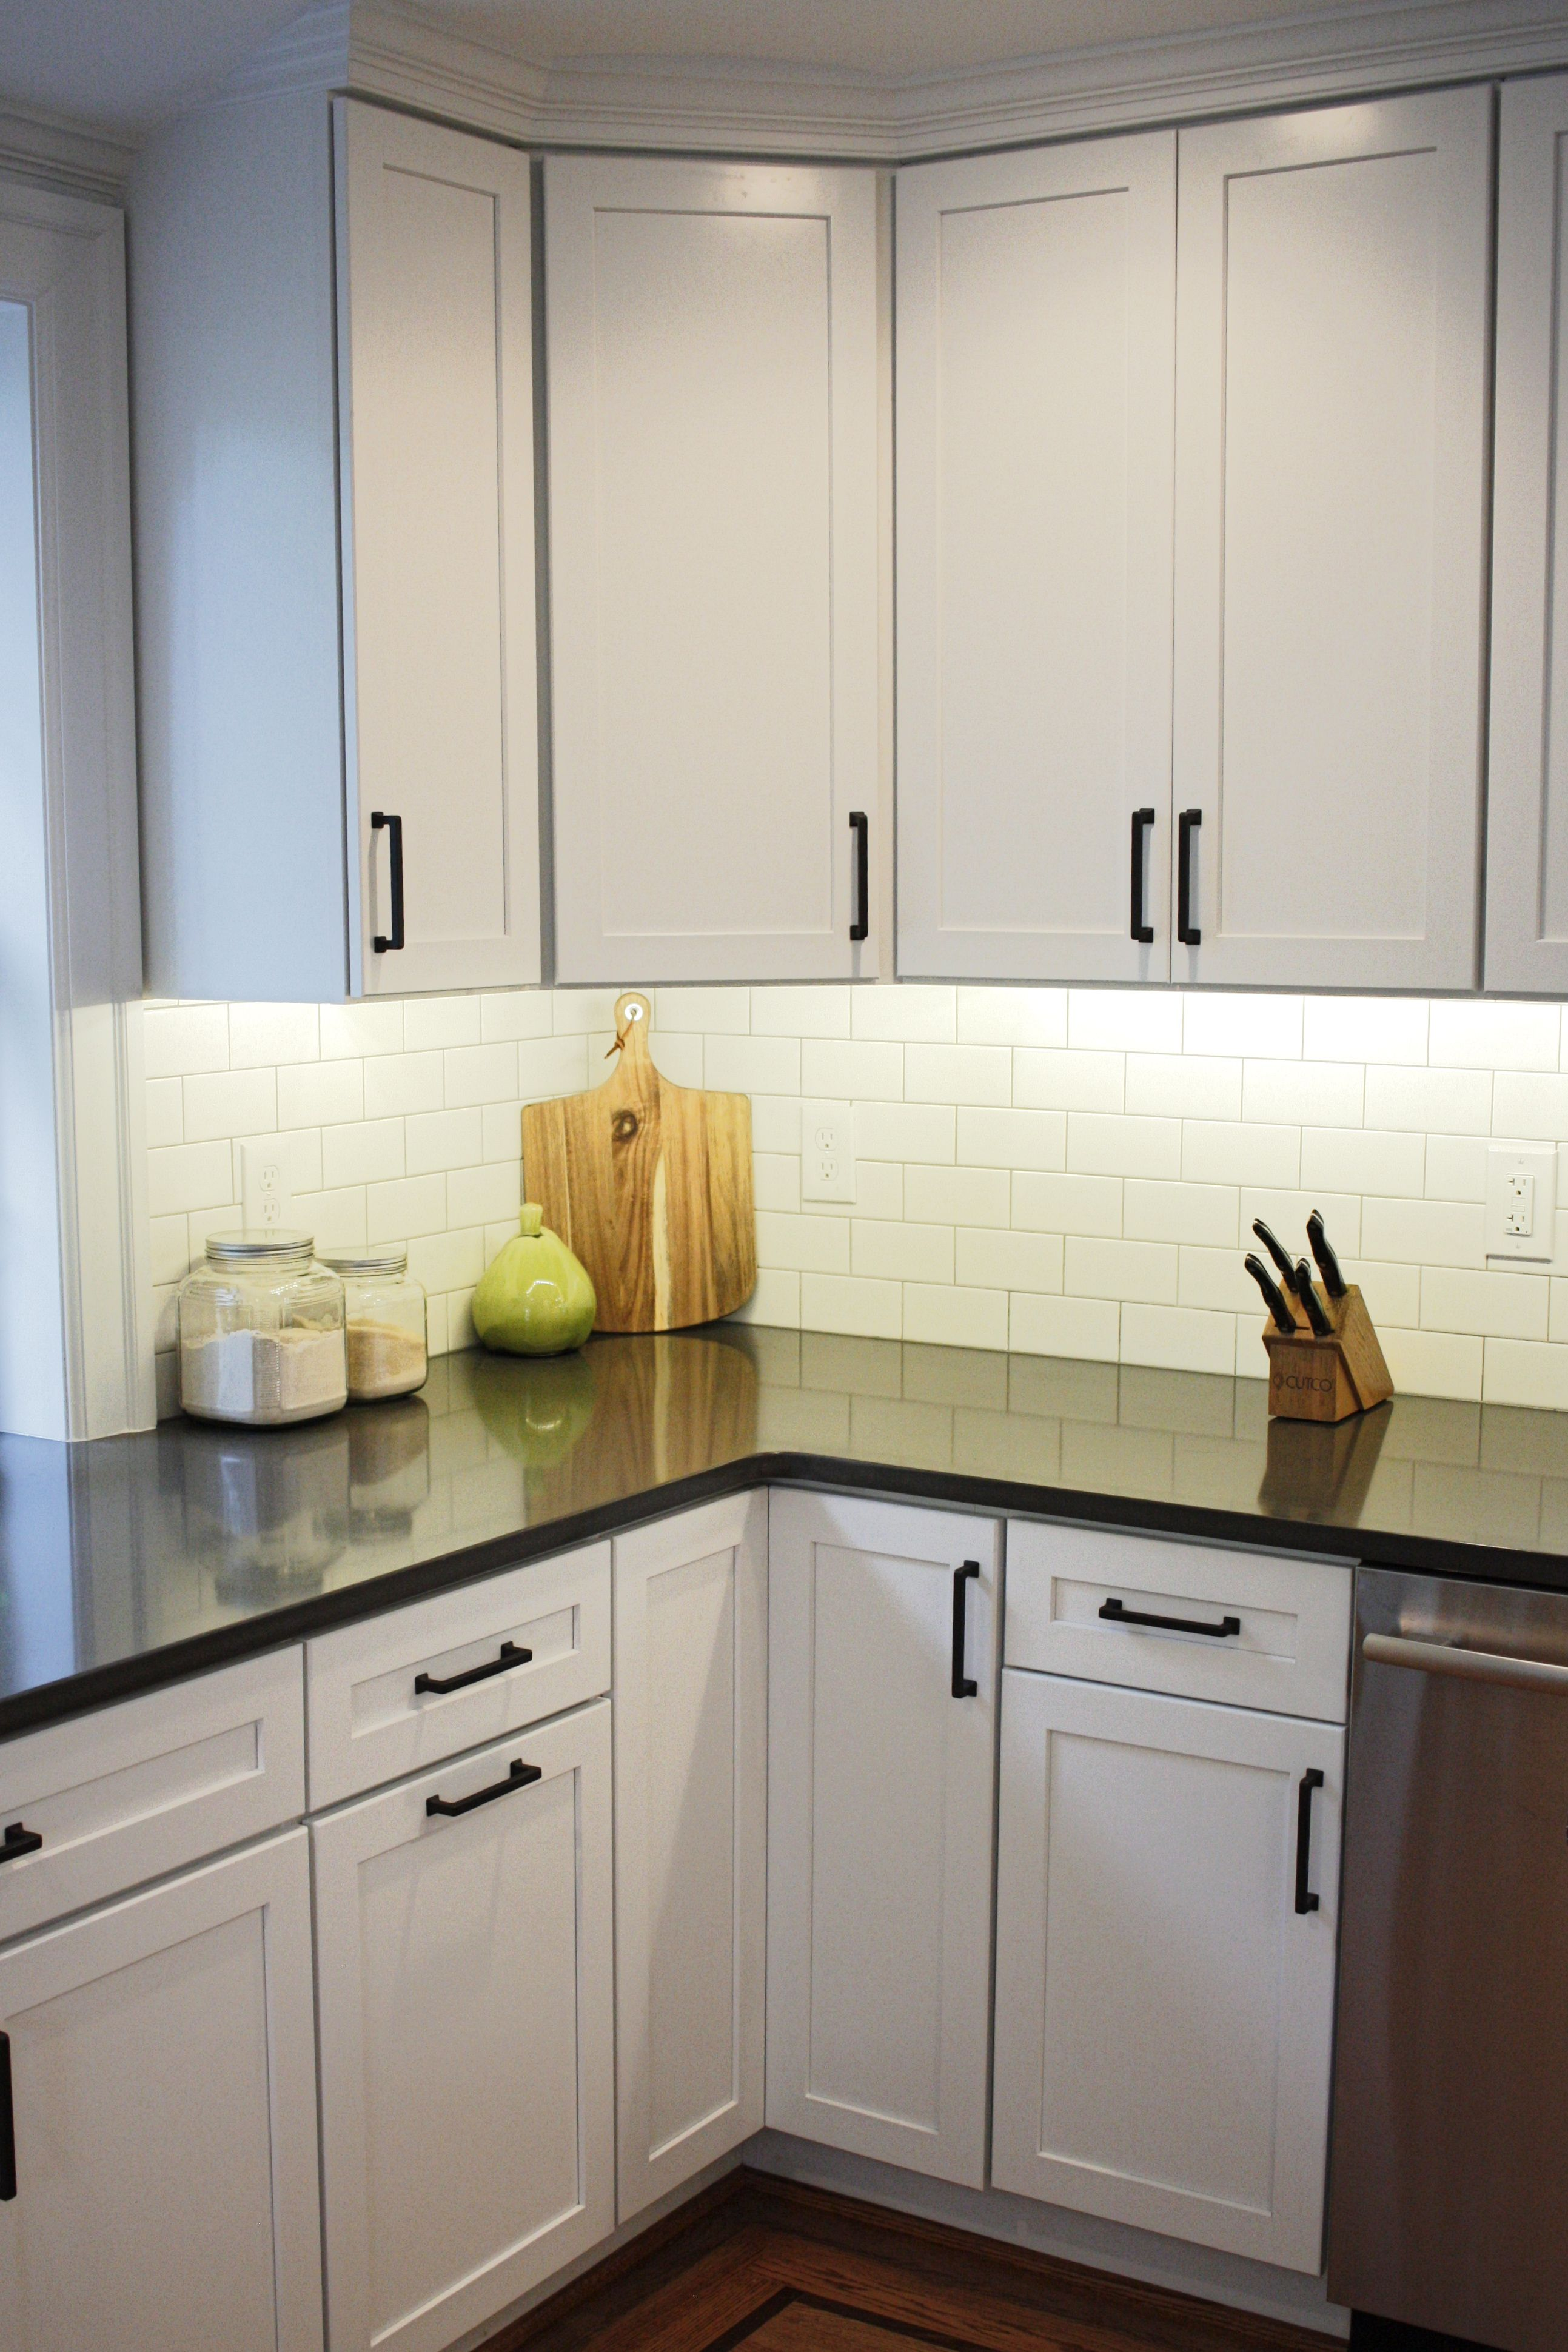 White cabinets subway tile backsplash by turner troxell in